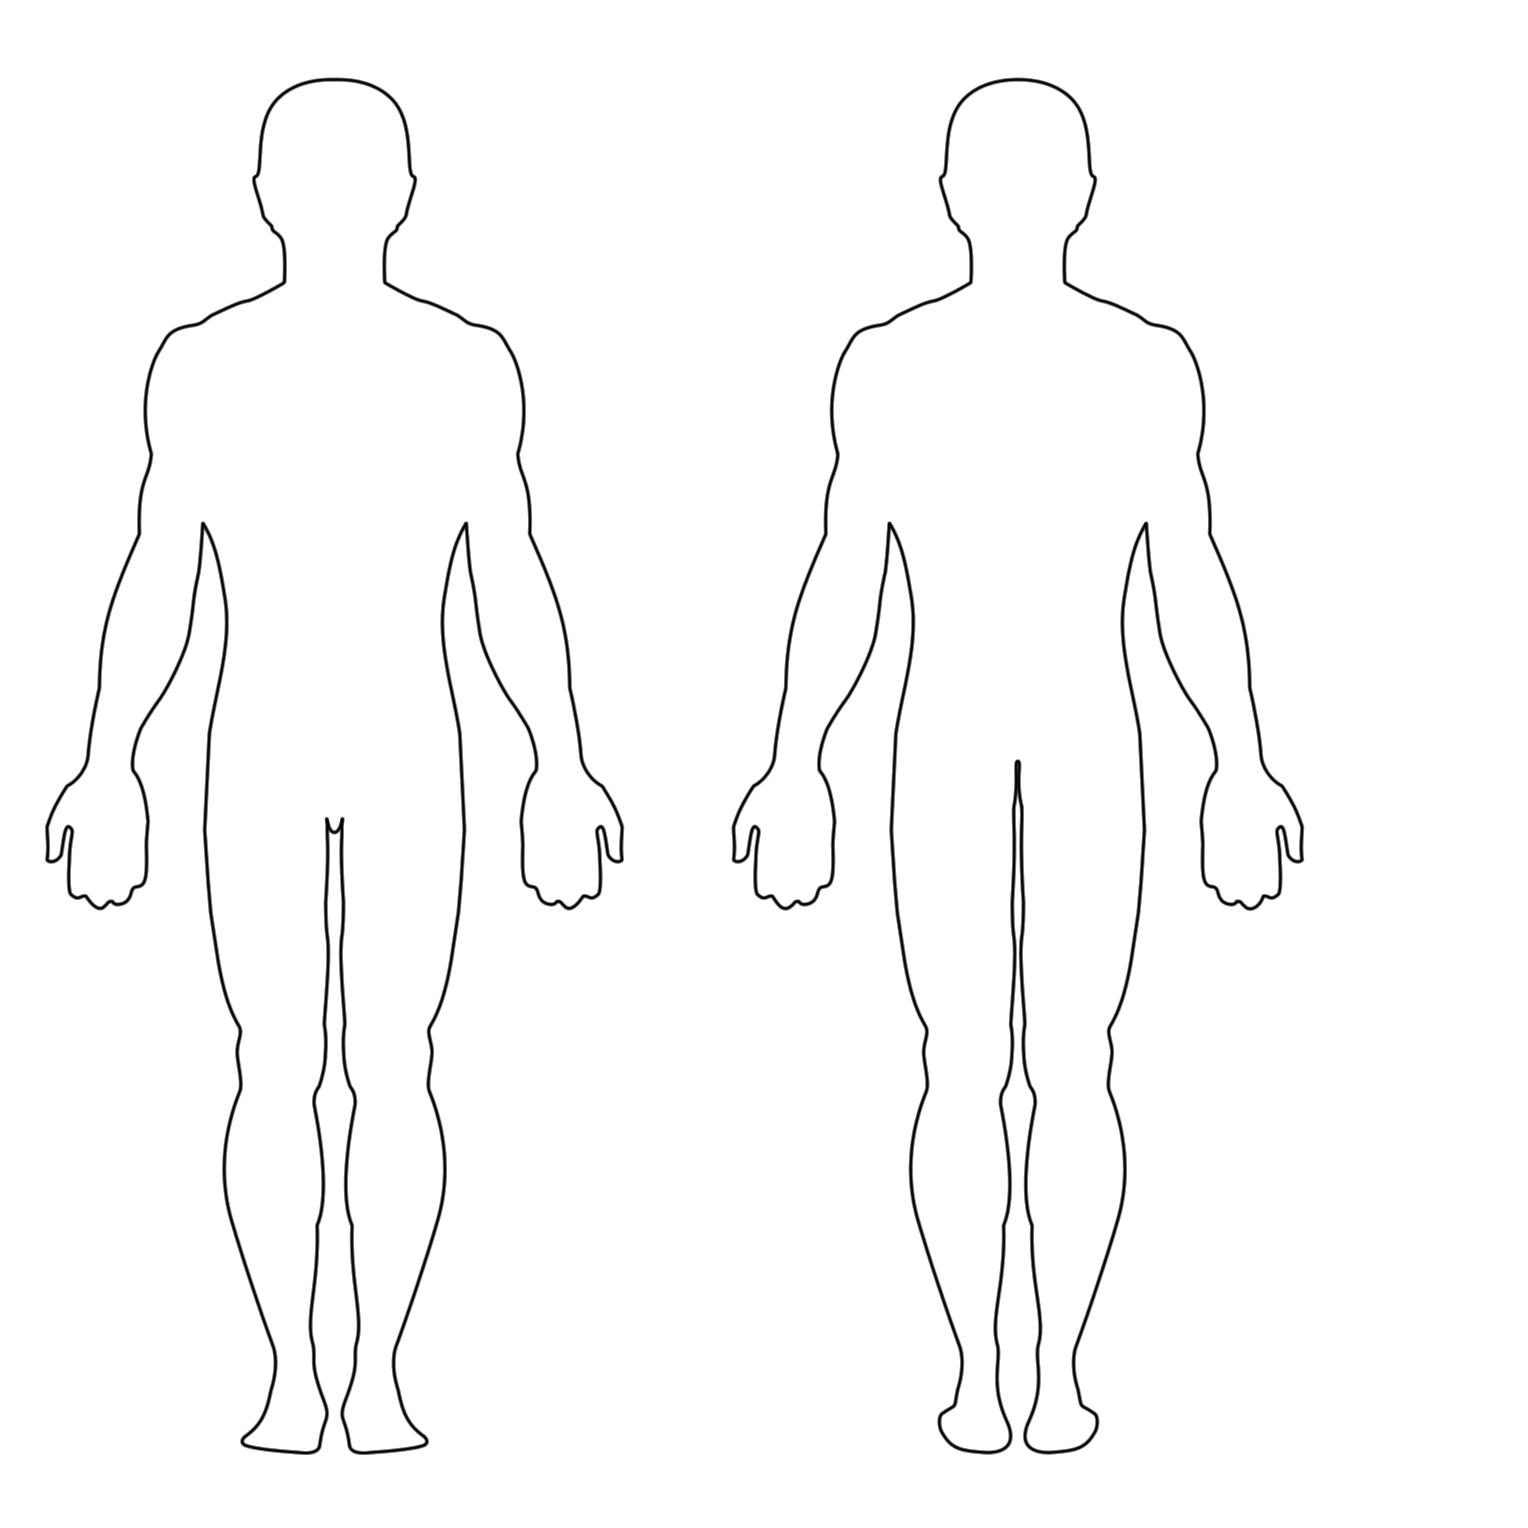 Free Human Outline Template, Download Free Clip Art, Free.